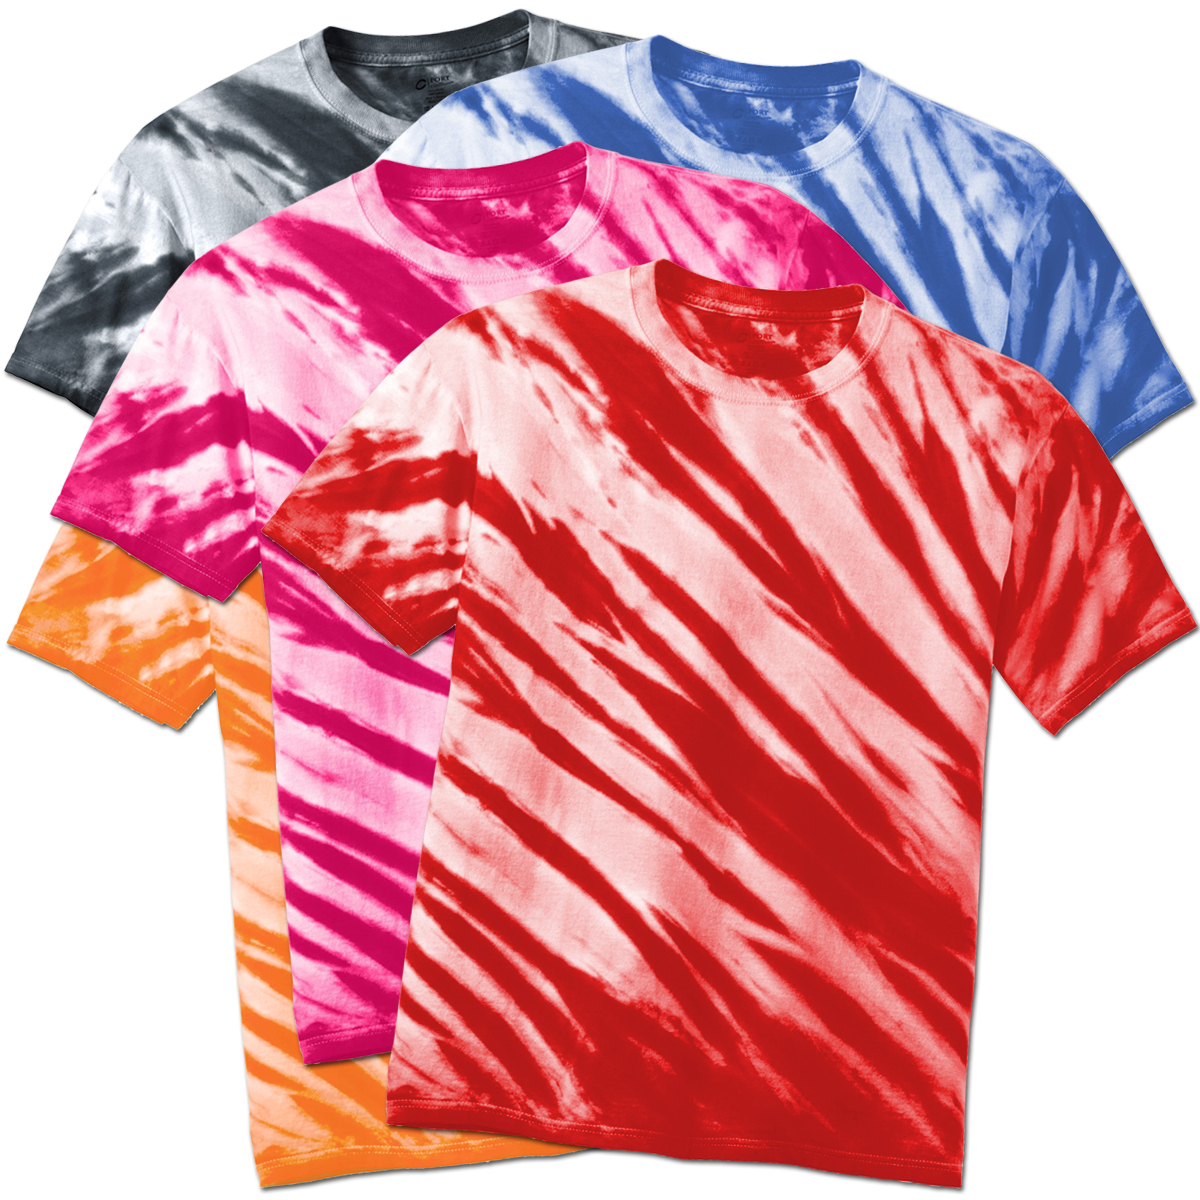 Clearance Plus Size Short Sleeve Lines Tie Dye T Shirts